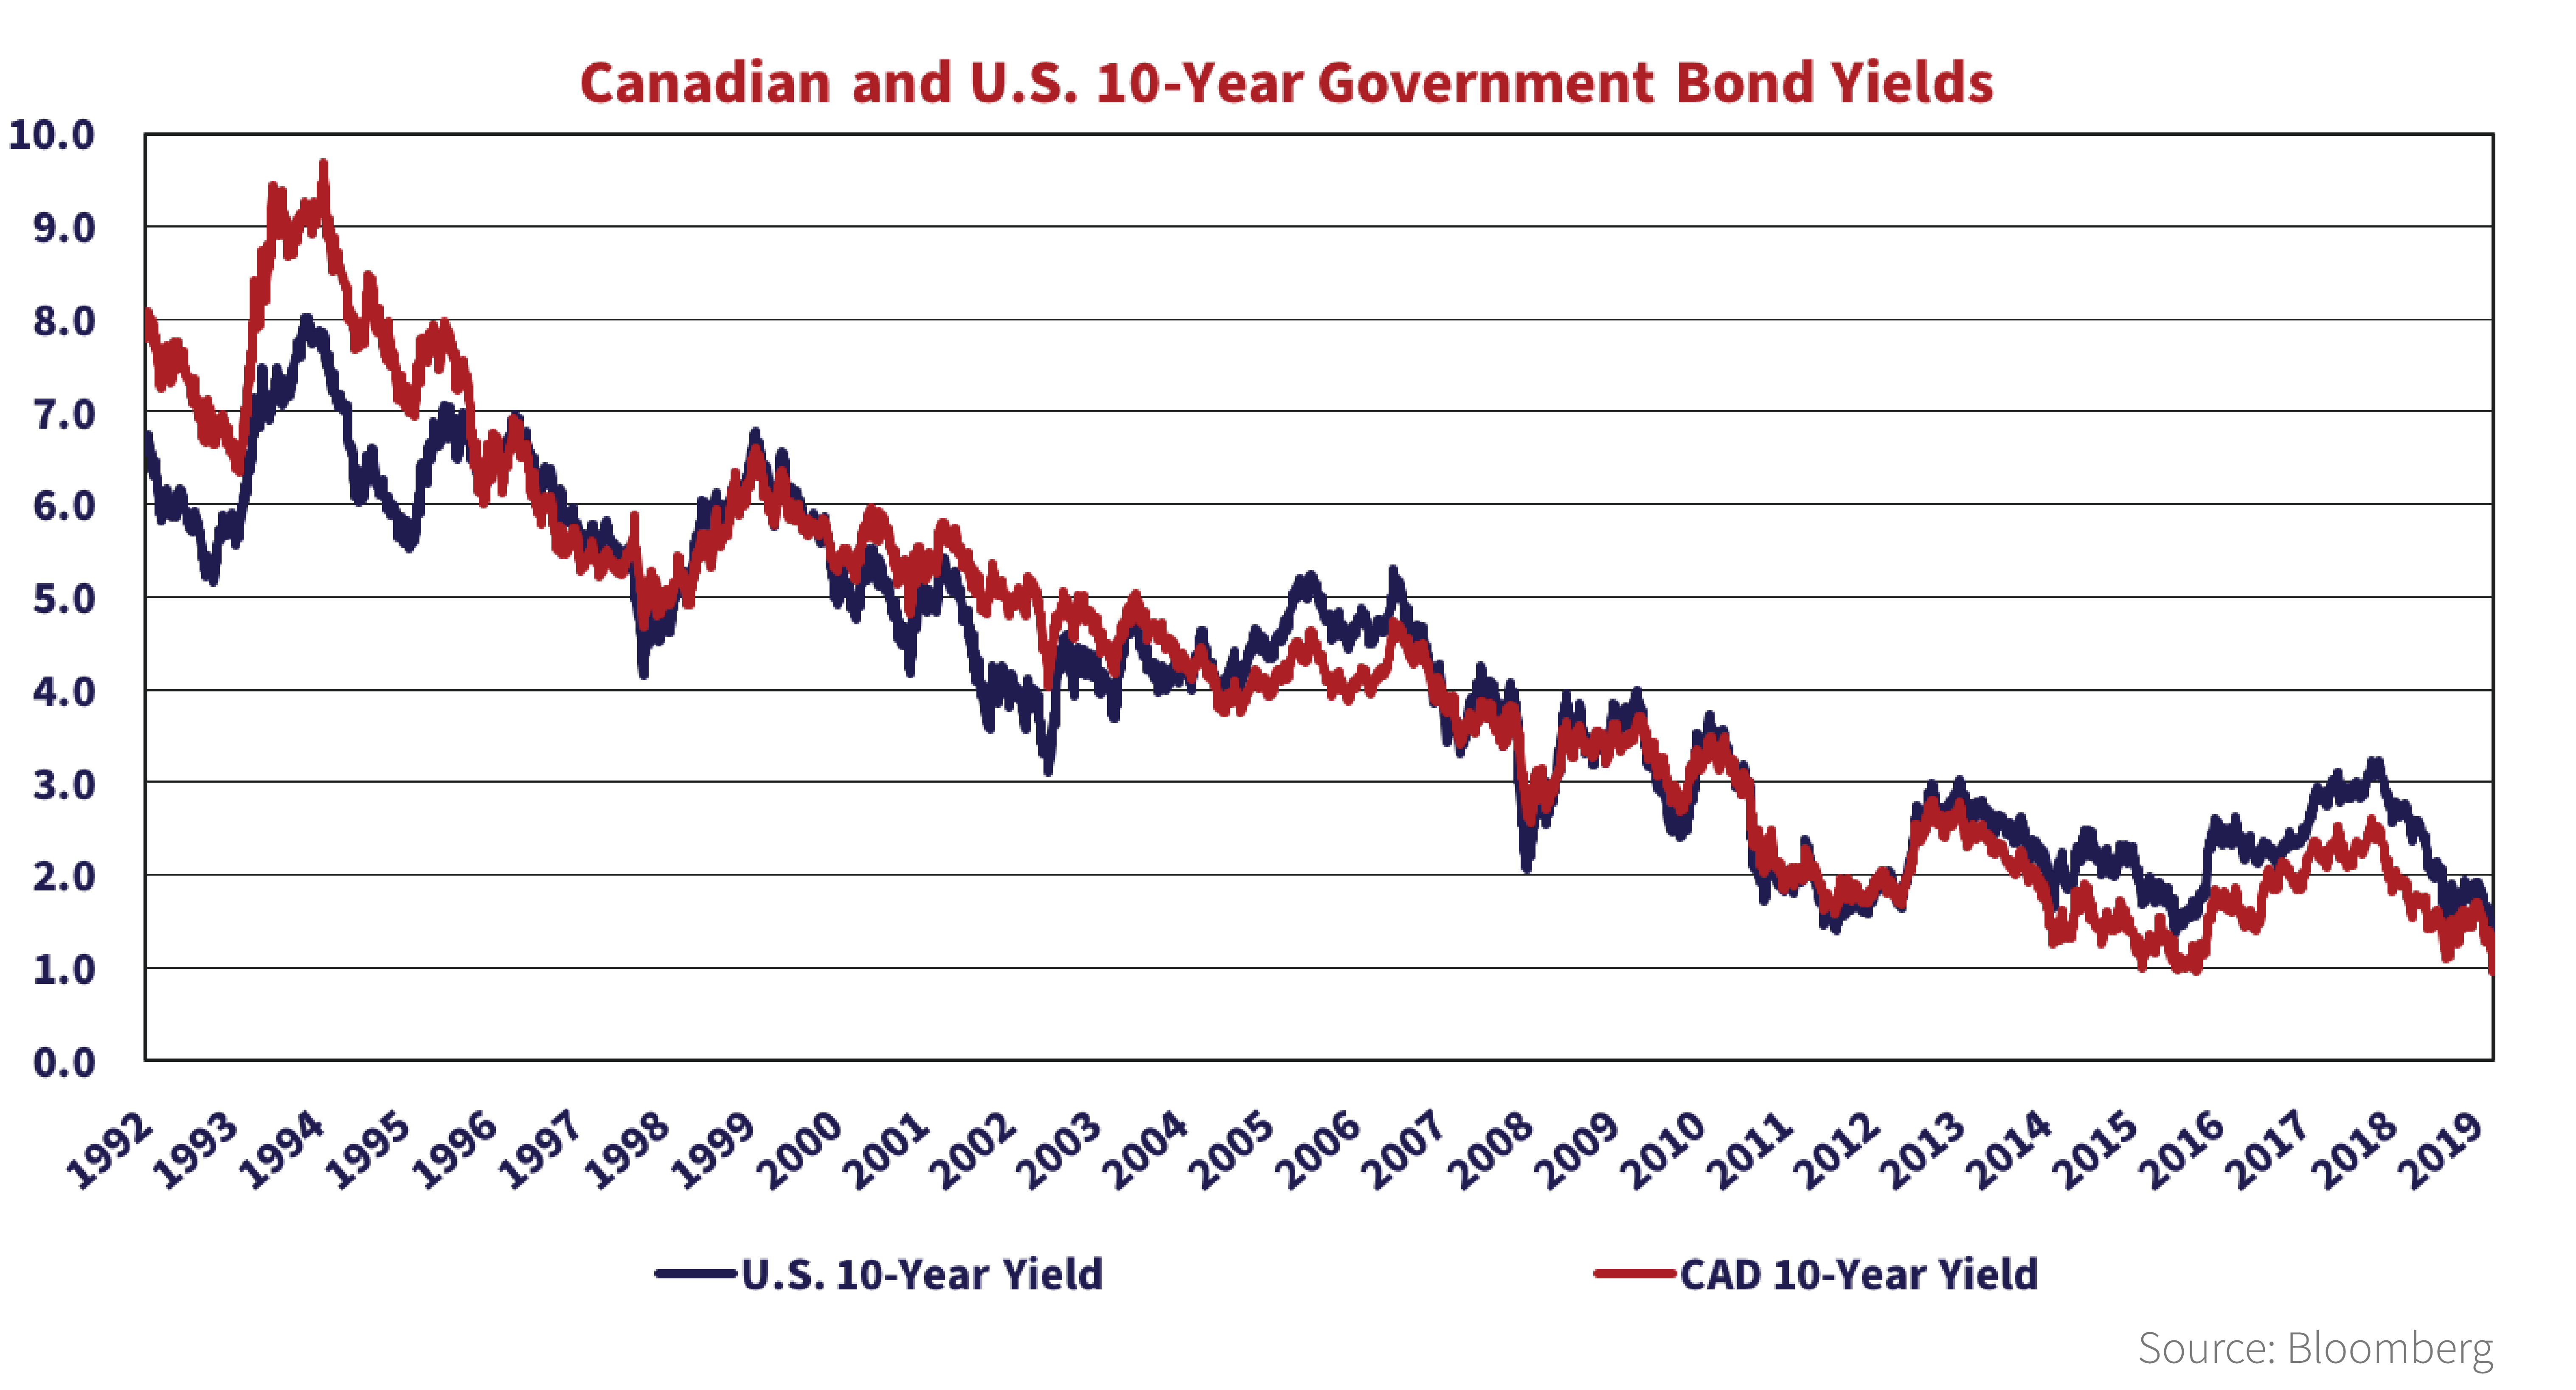 line graph shows the Canadian and U.S. 10-year government bond yields from the years 1992 to 2020.